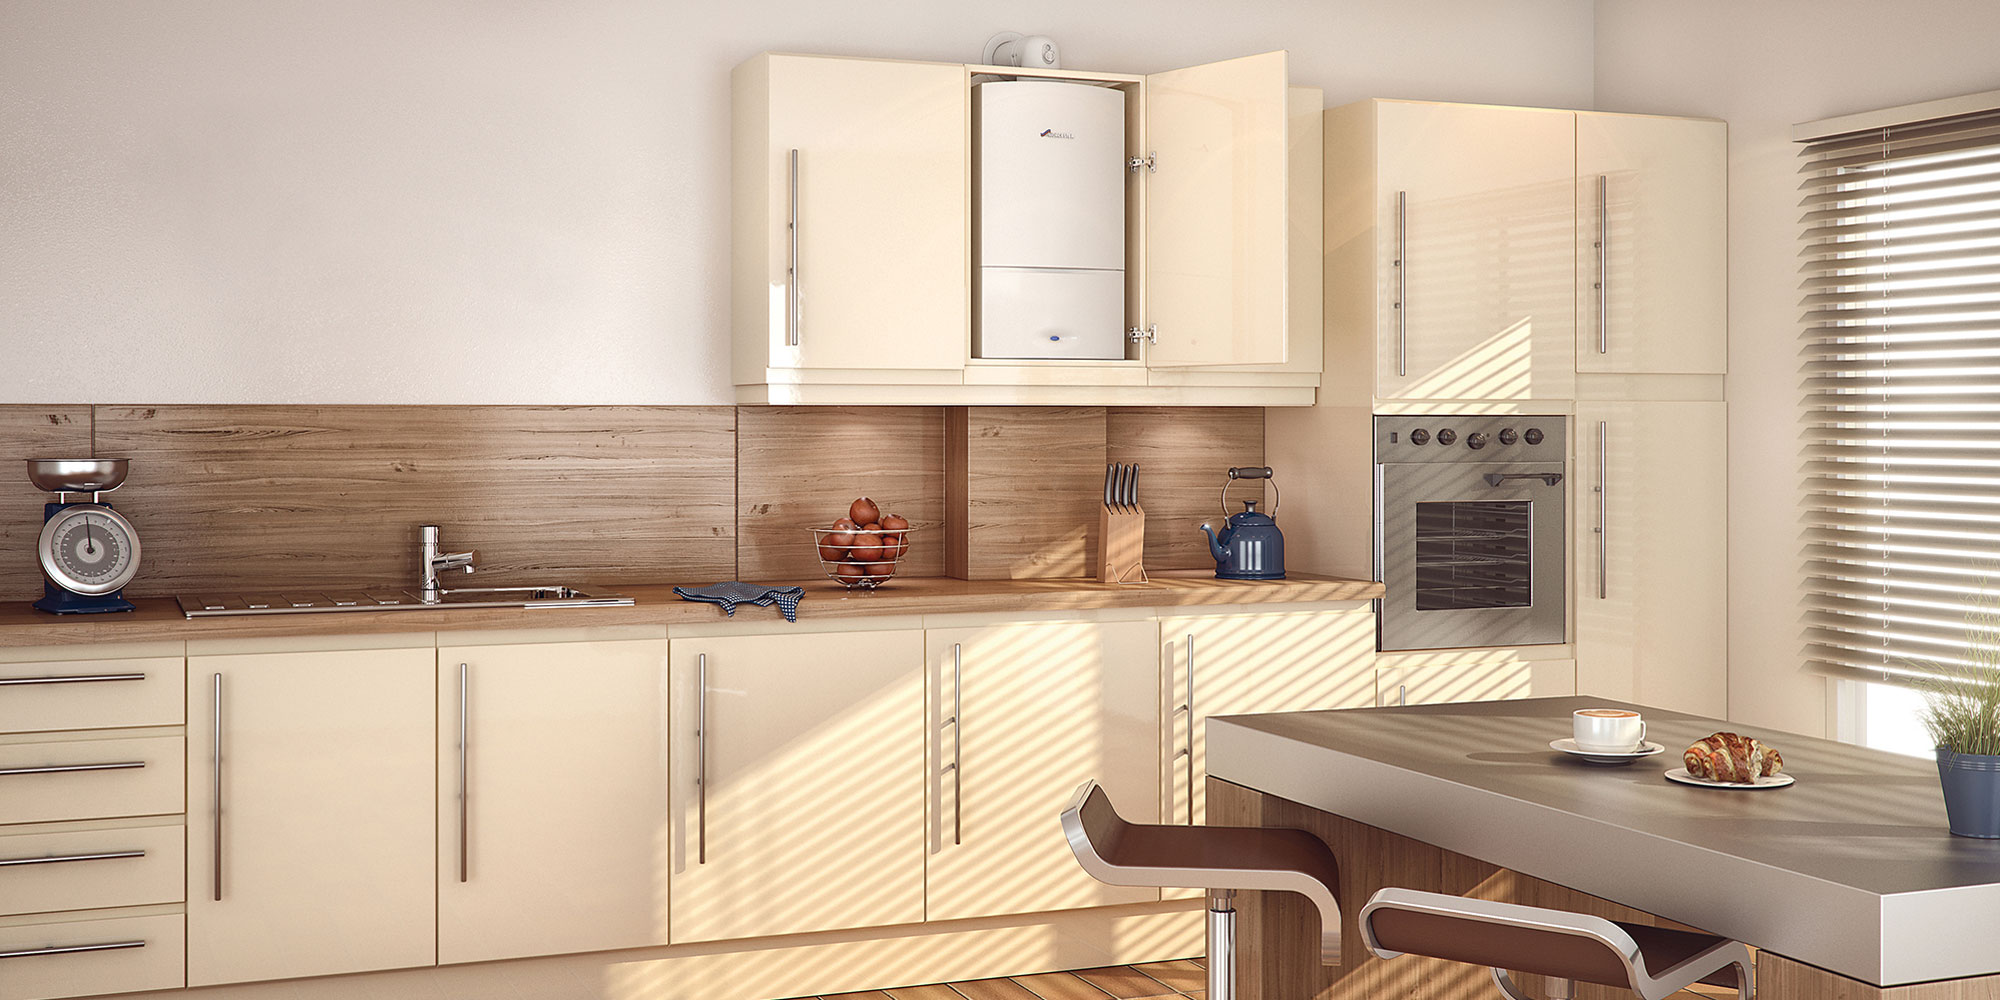 Simon Annear Plumbing and Heating provide boiler installations.